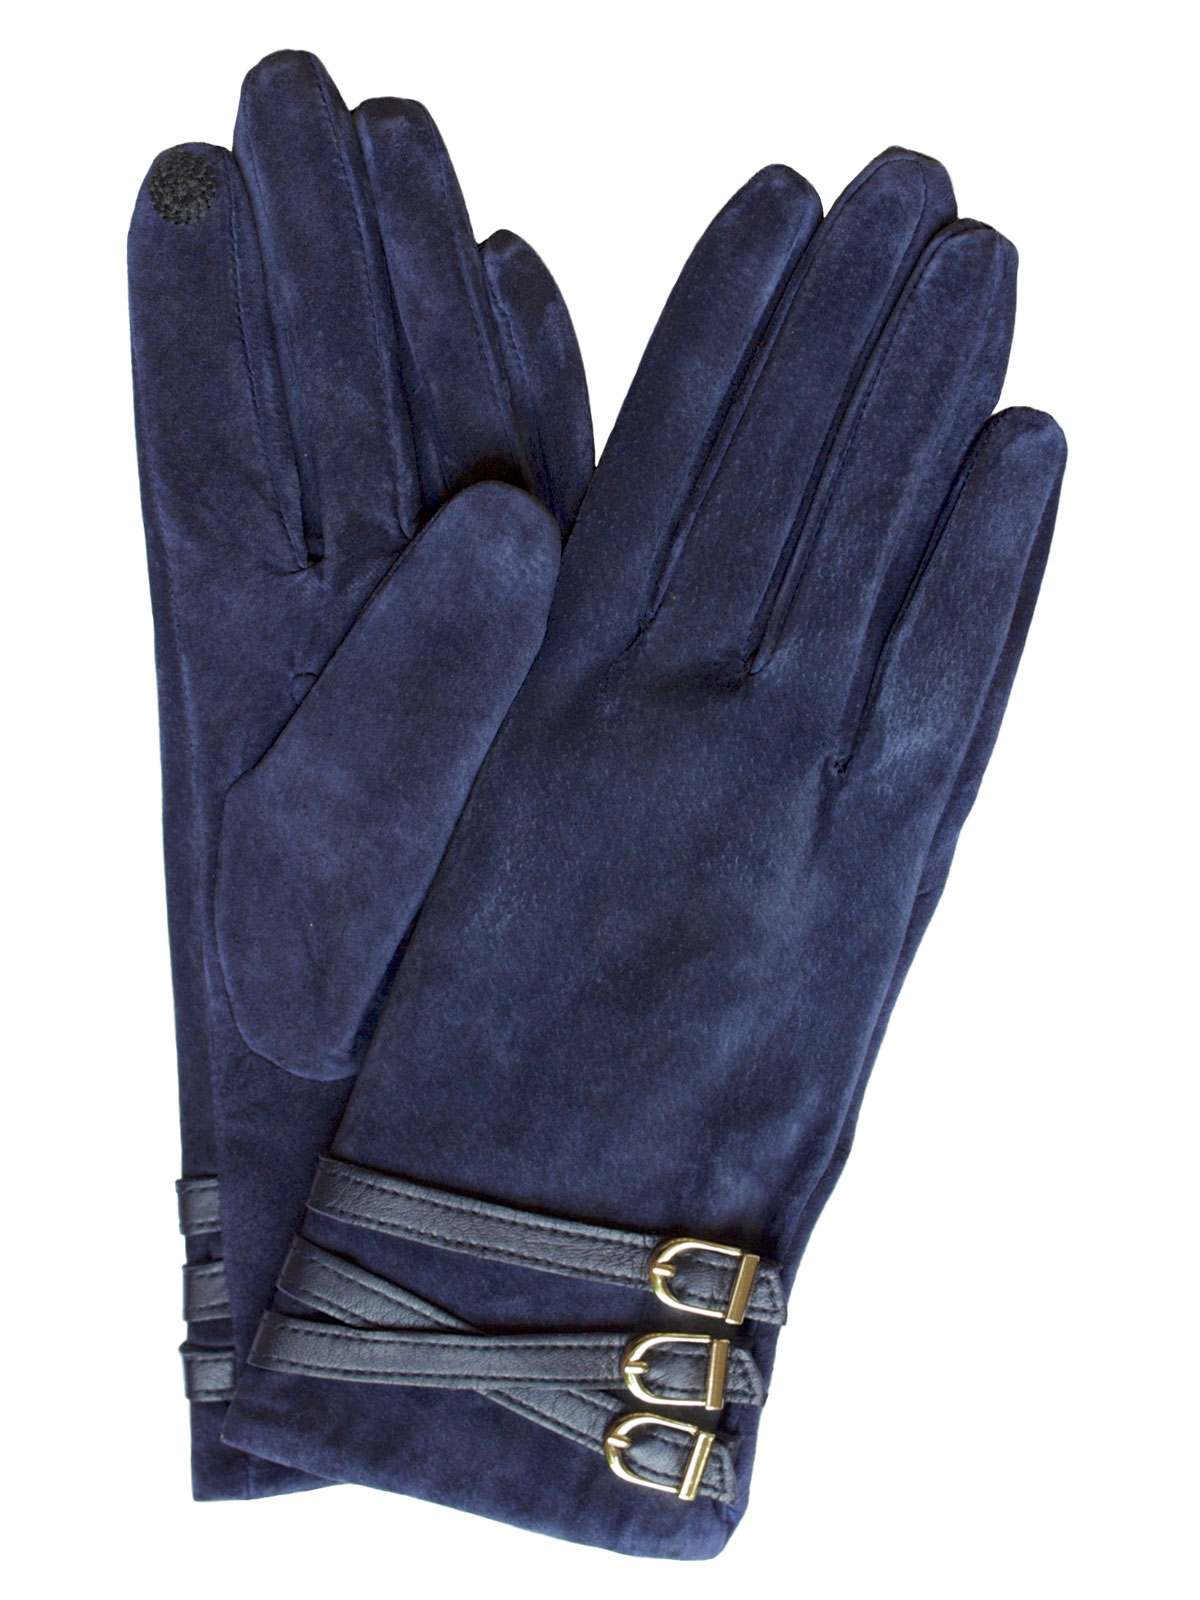 The leather, knitted and chennile gloves in a beautiful colour palette are a stylish addition to your wardrobe, yet beautifully practical to keep your hands cosy. Perhaps complement your weekday look with suede gloves and scarves for a snug feel.